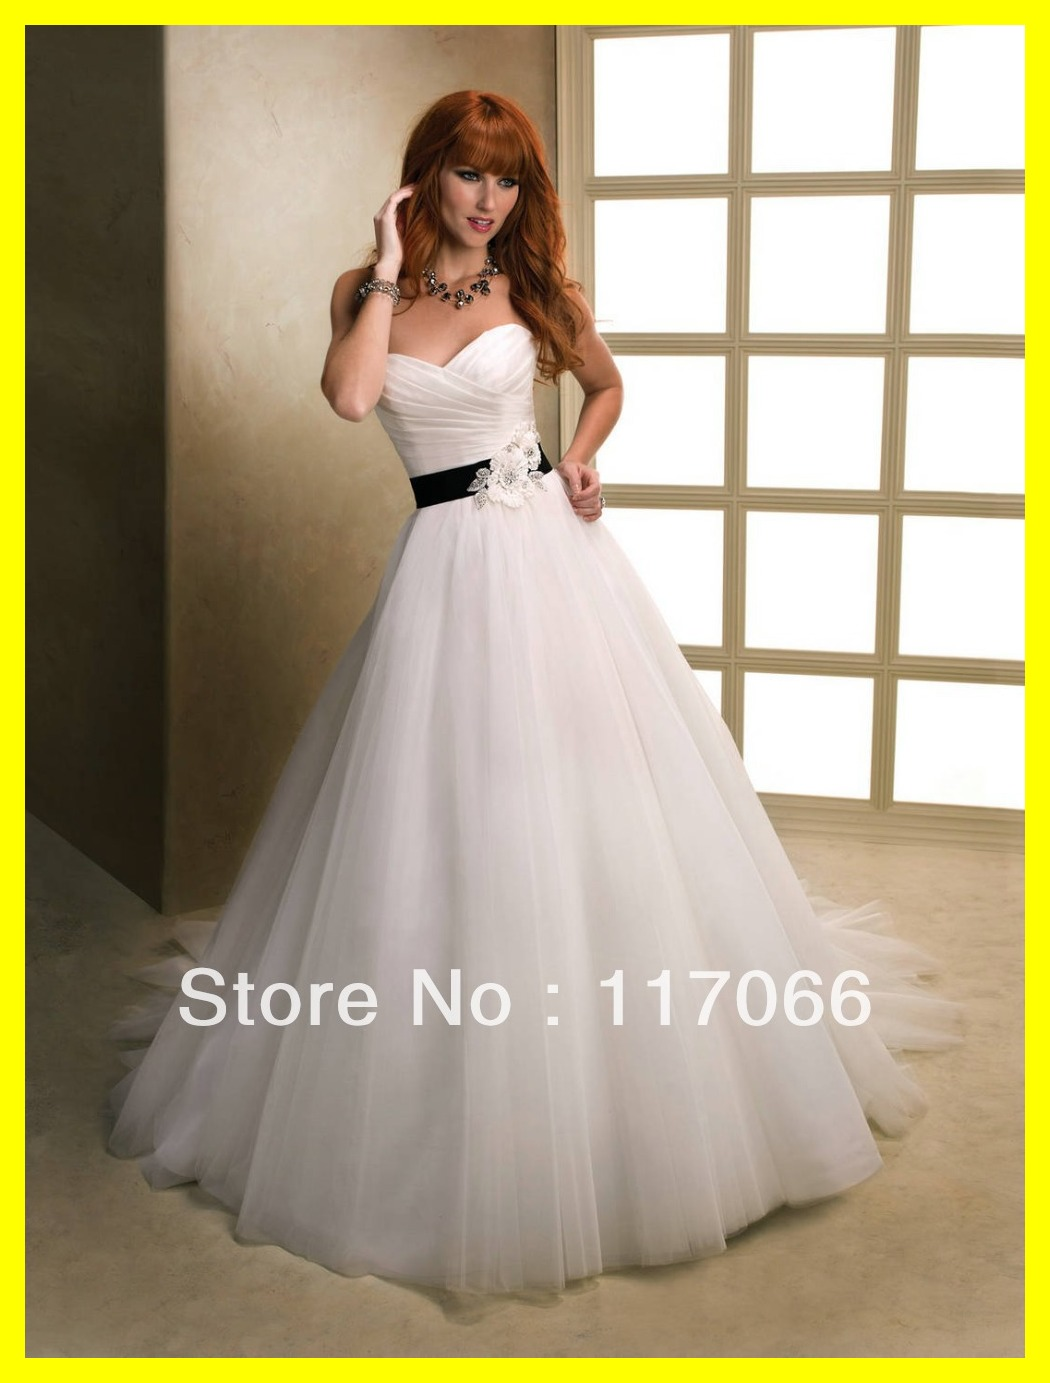 Short white wedding dresses cute party sleeve long sleeved for Cute short white wedding dresses